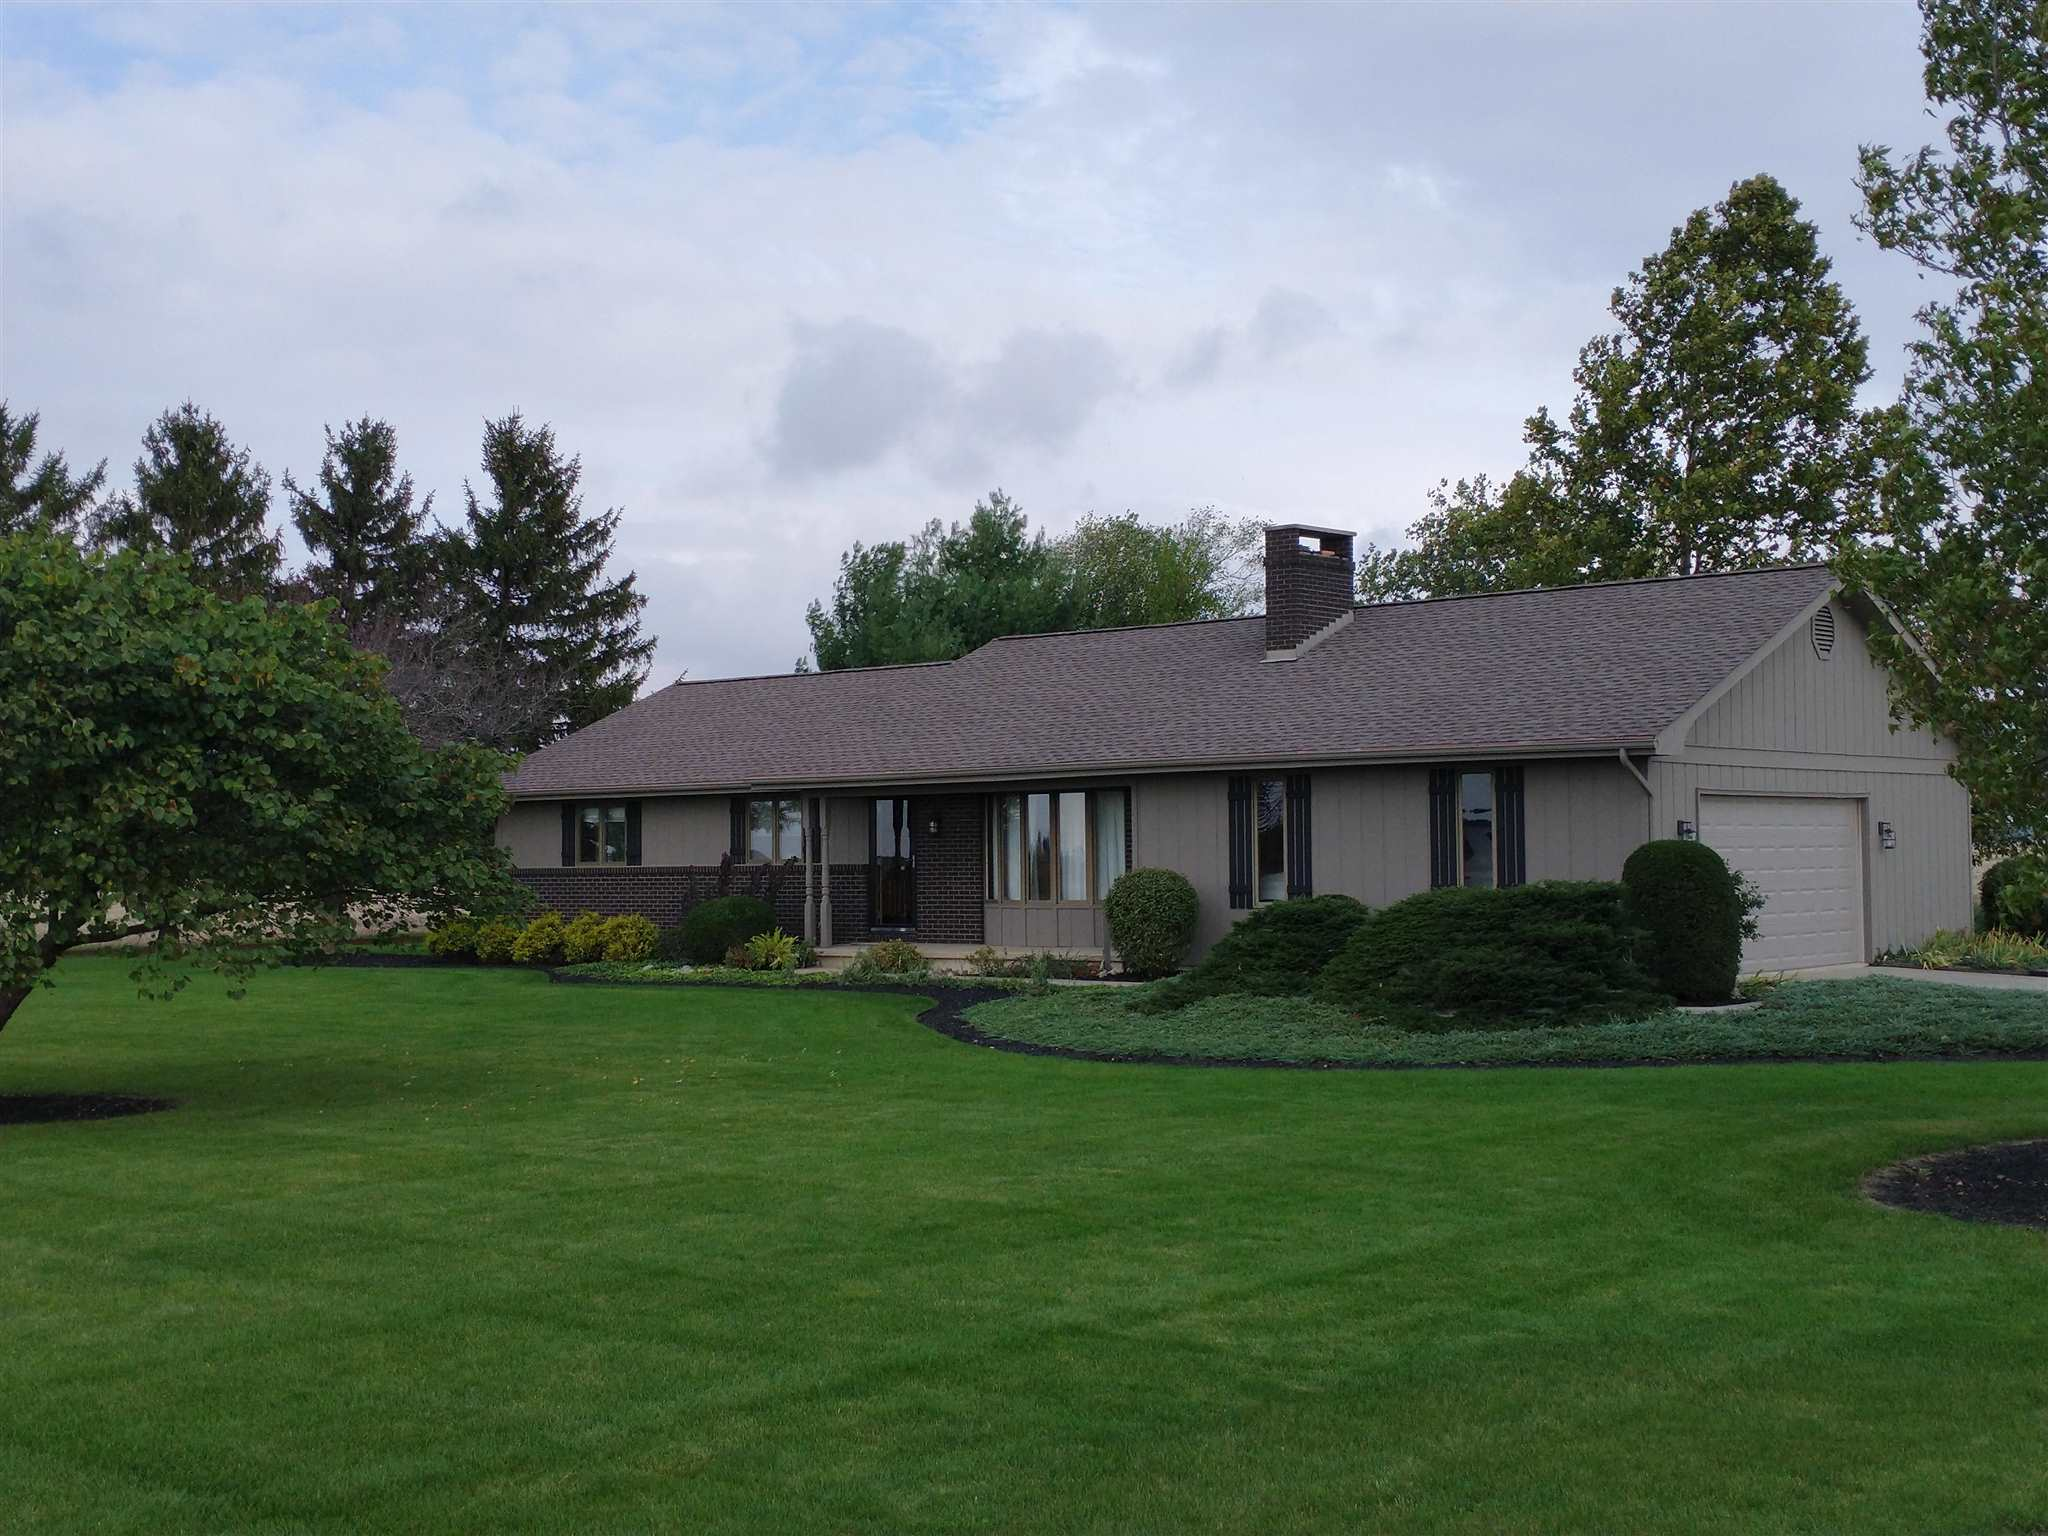 5435 W 500 N, Decatur, IN 46733